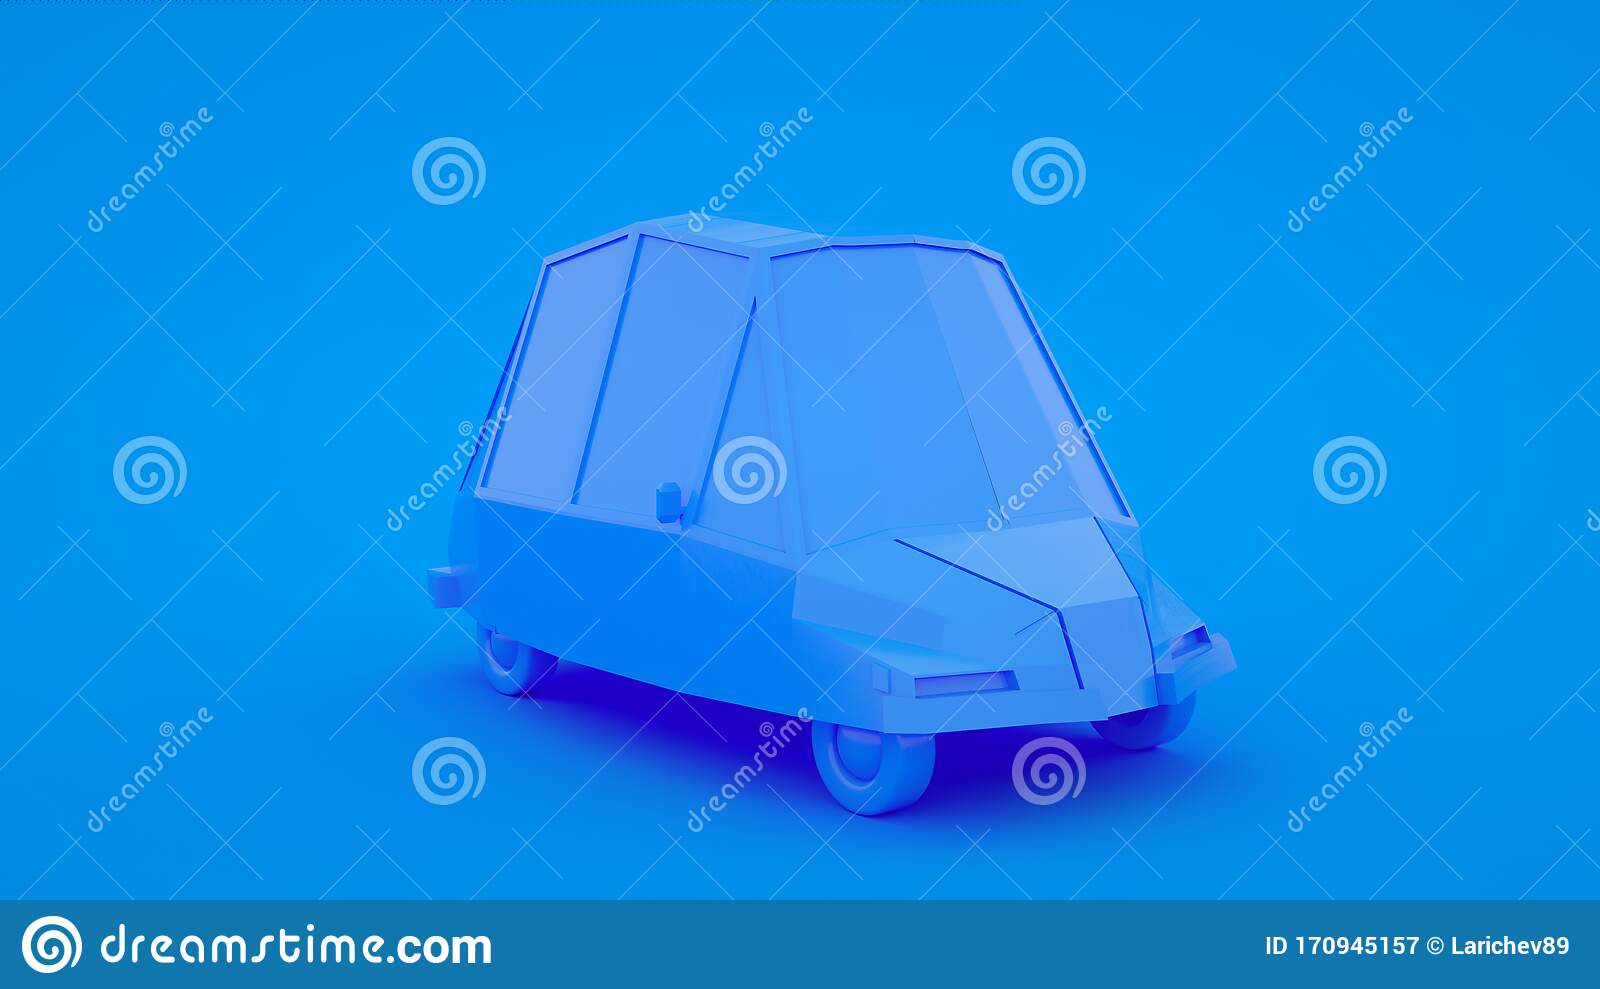 Cute Cartoon Low Poly Car 3d Rendering Geometric Scene On Blue Pastel Background Stock Illustration Illustration Of Pattern Graphic 170945157